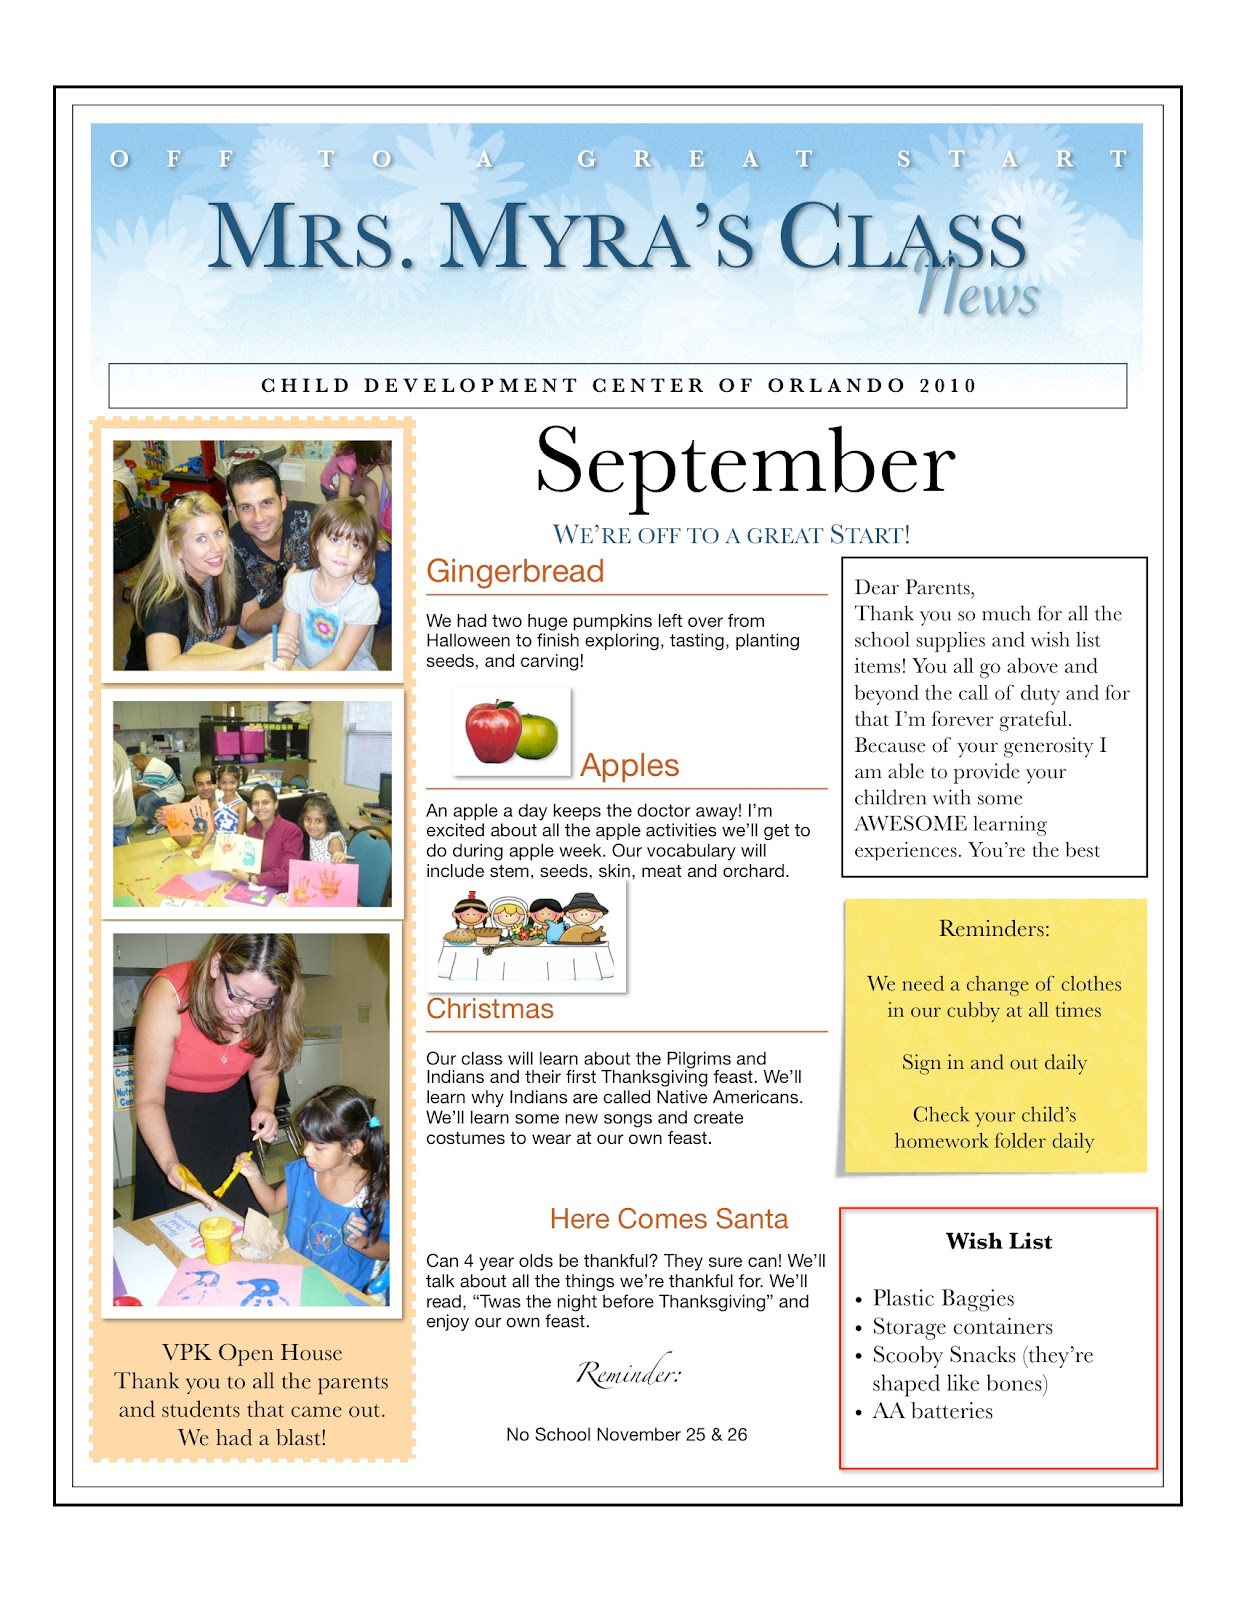 Baby Sitting News Letter Template